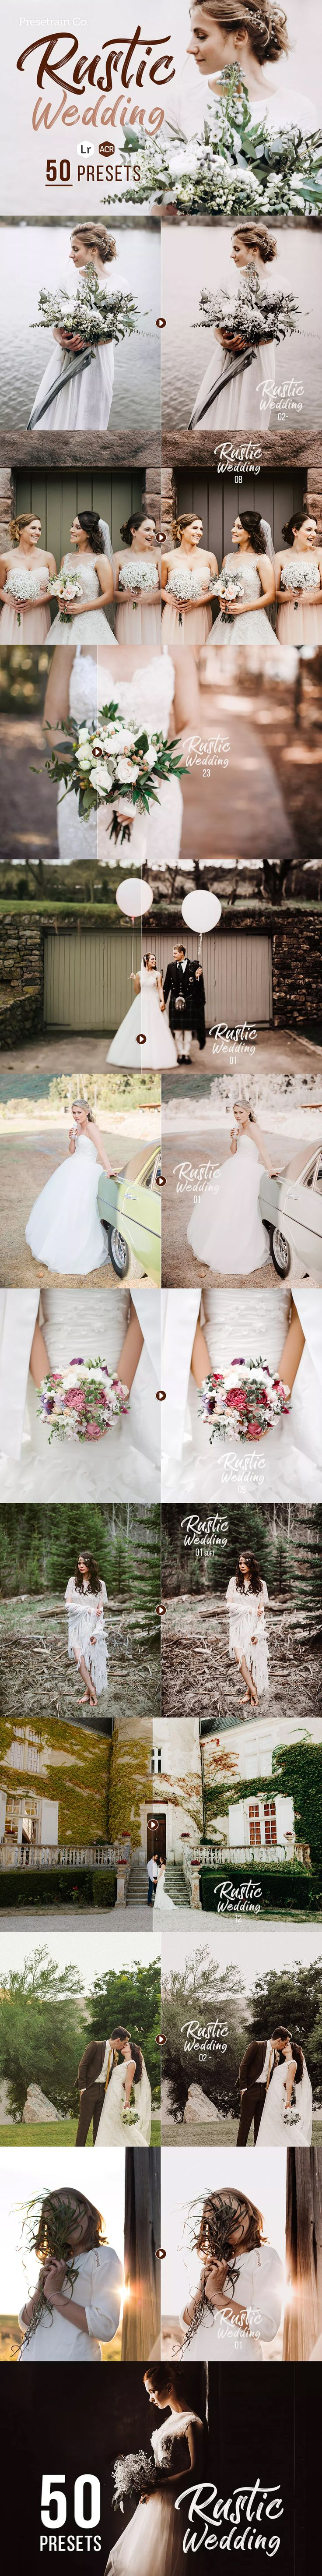 Rustic Wedding Presets For Lightroom Photo